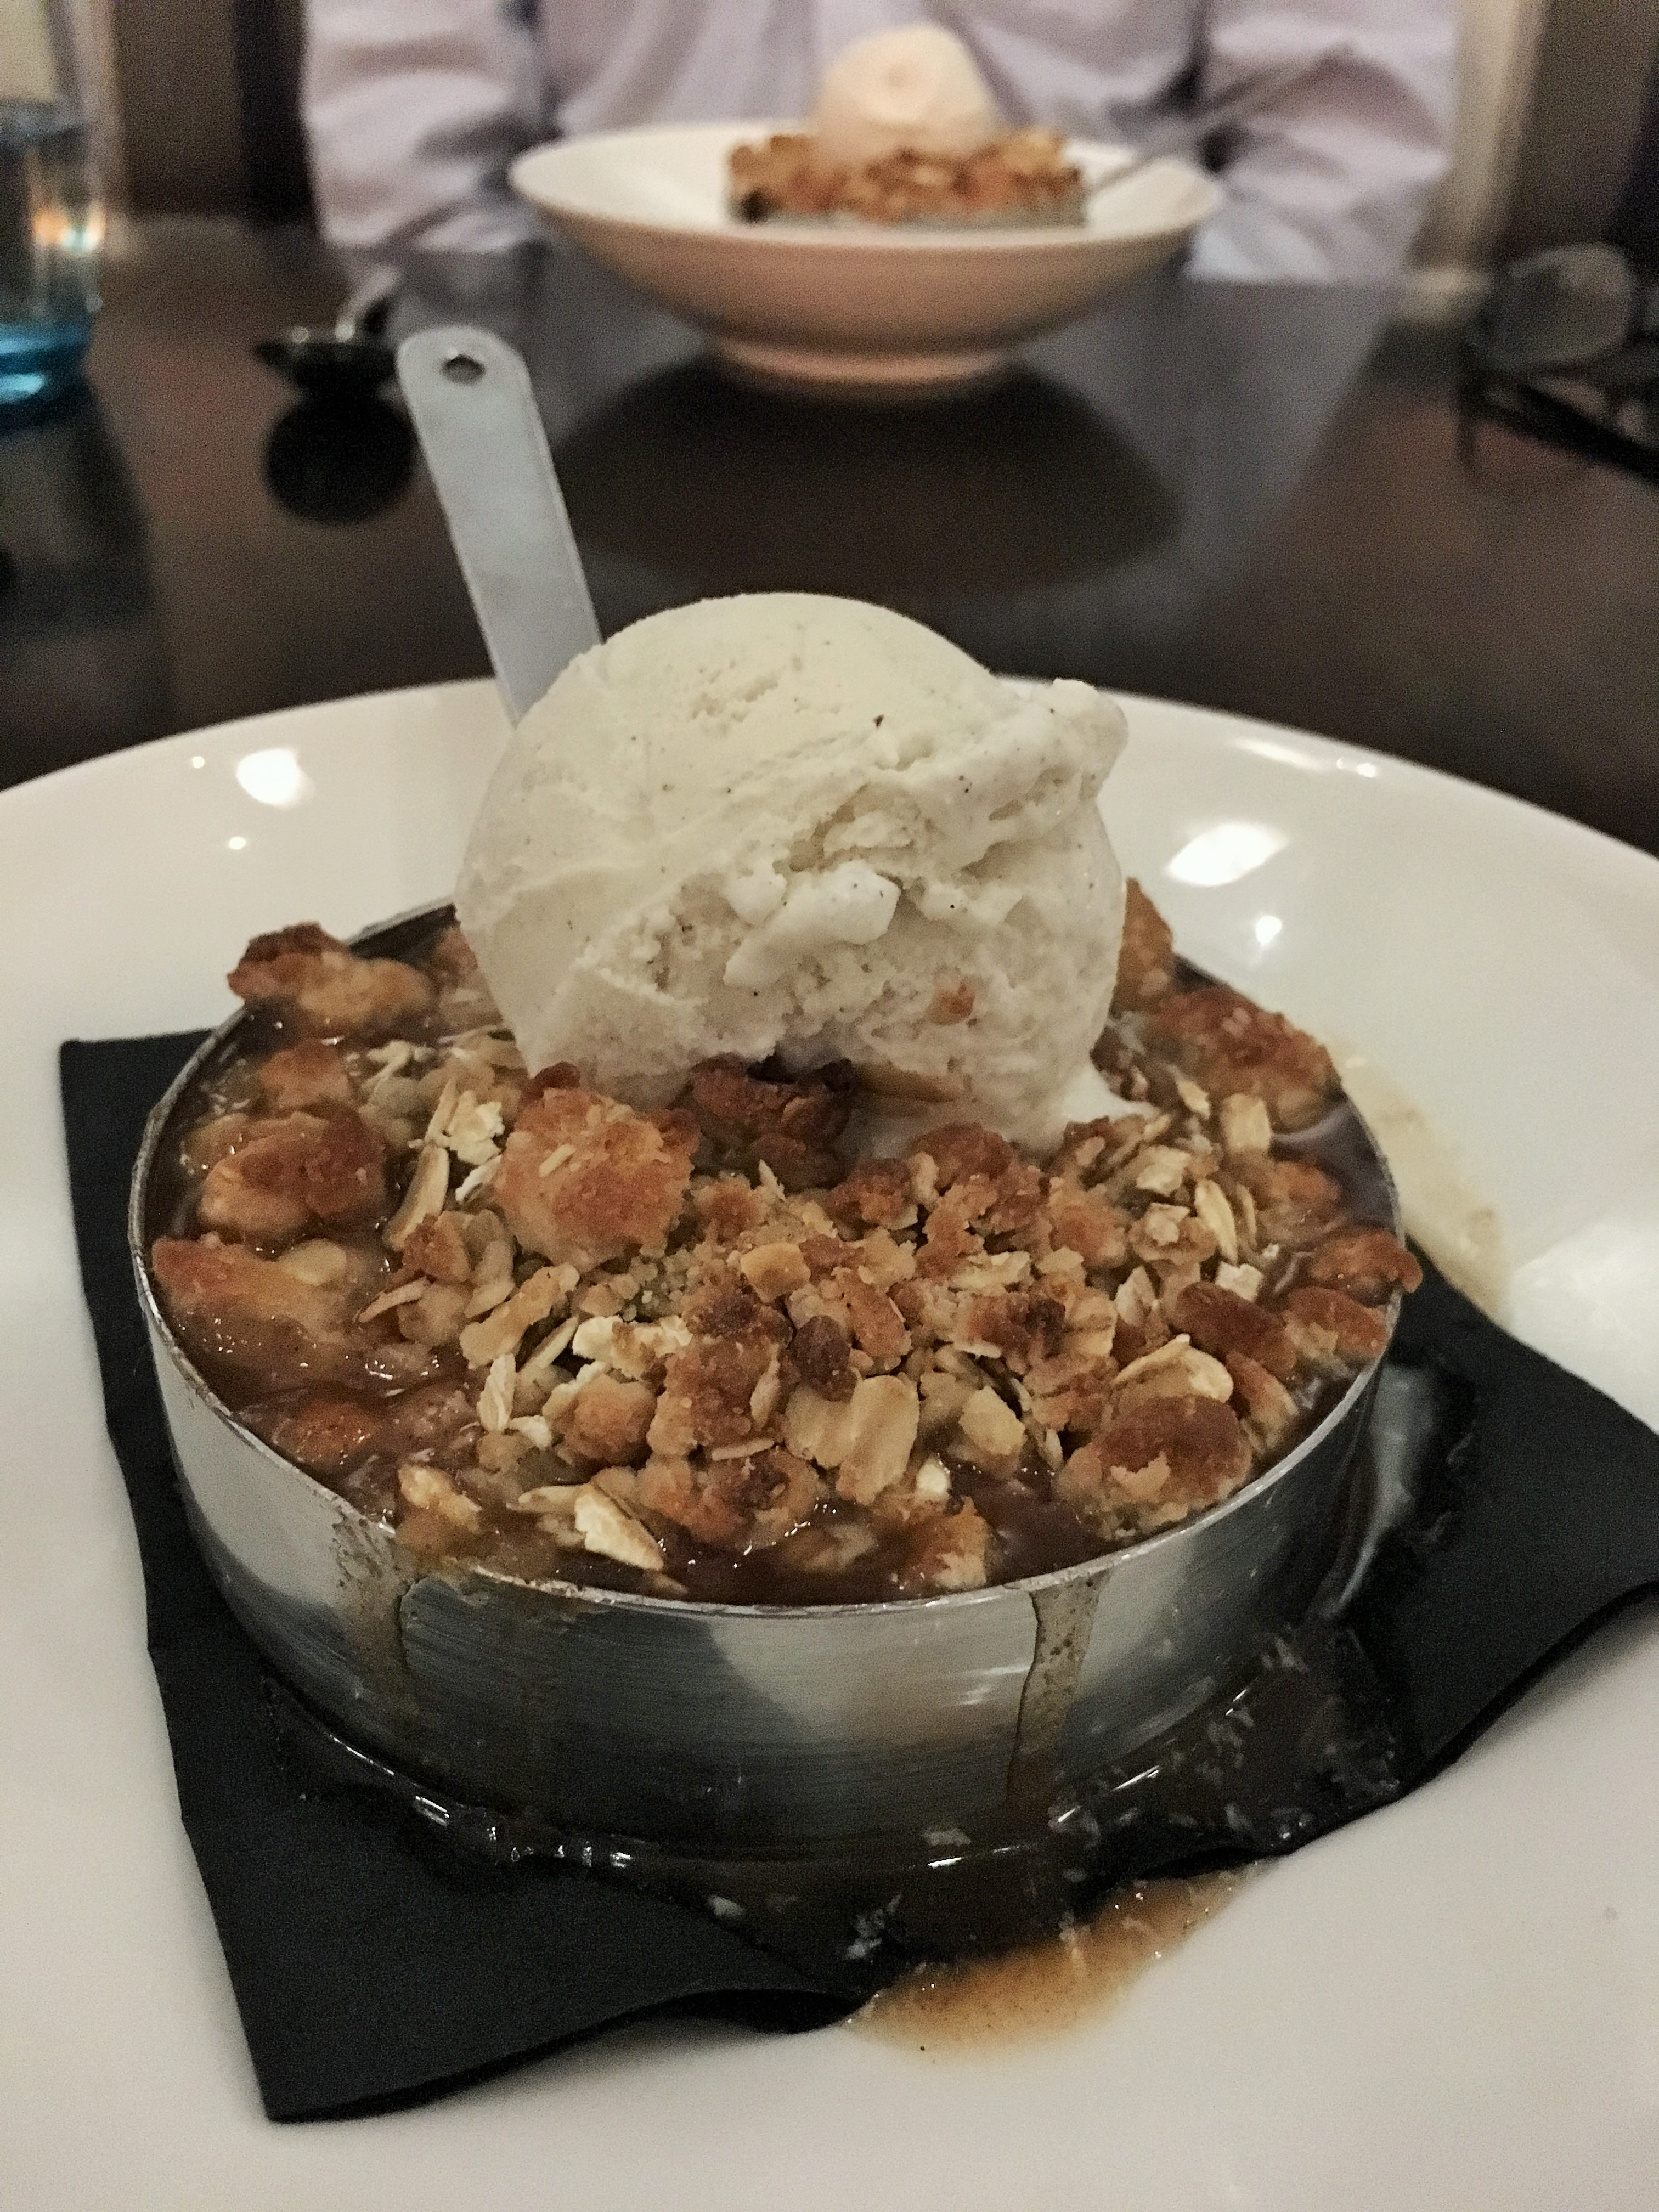 Seasonal Crisp of the Day... blueberry apple deliciousness topped with creamy vanilla ice cream.